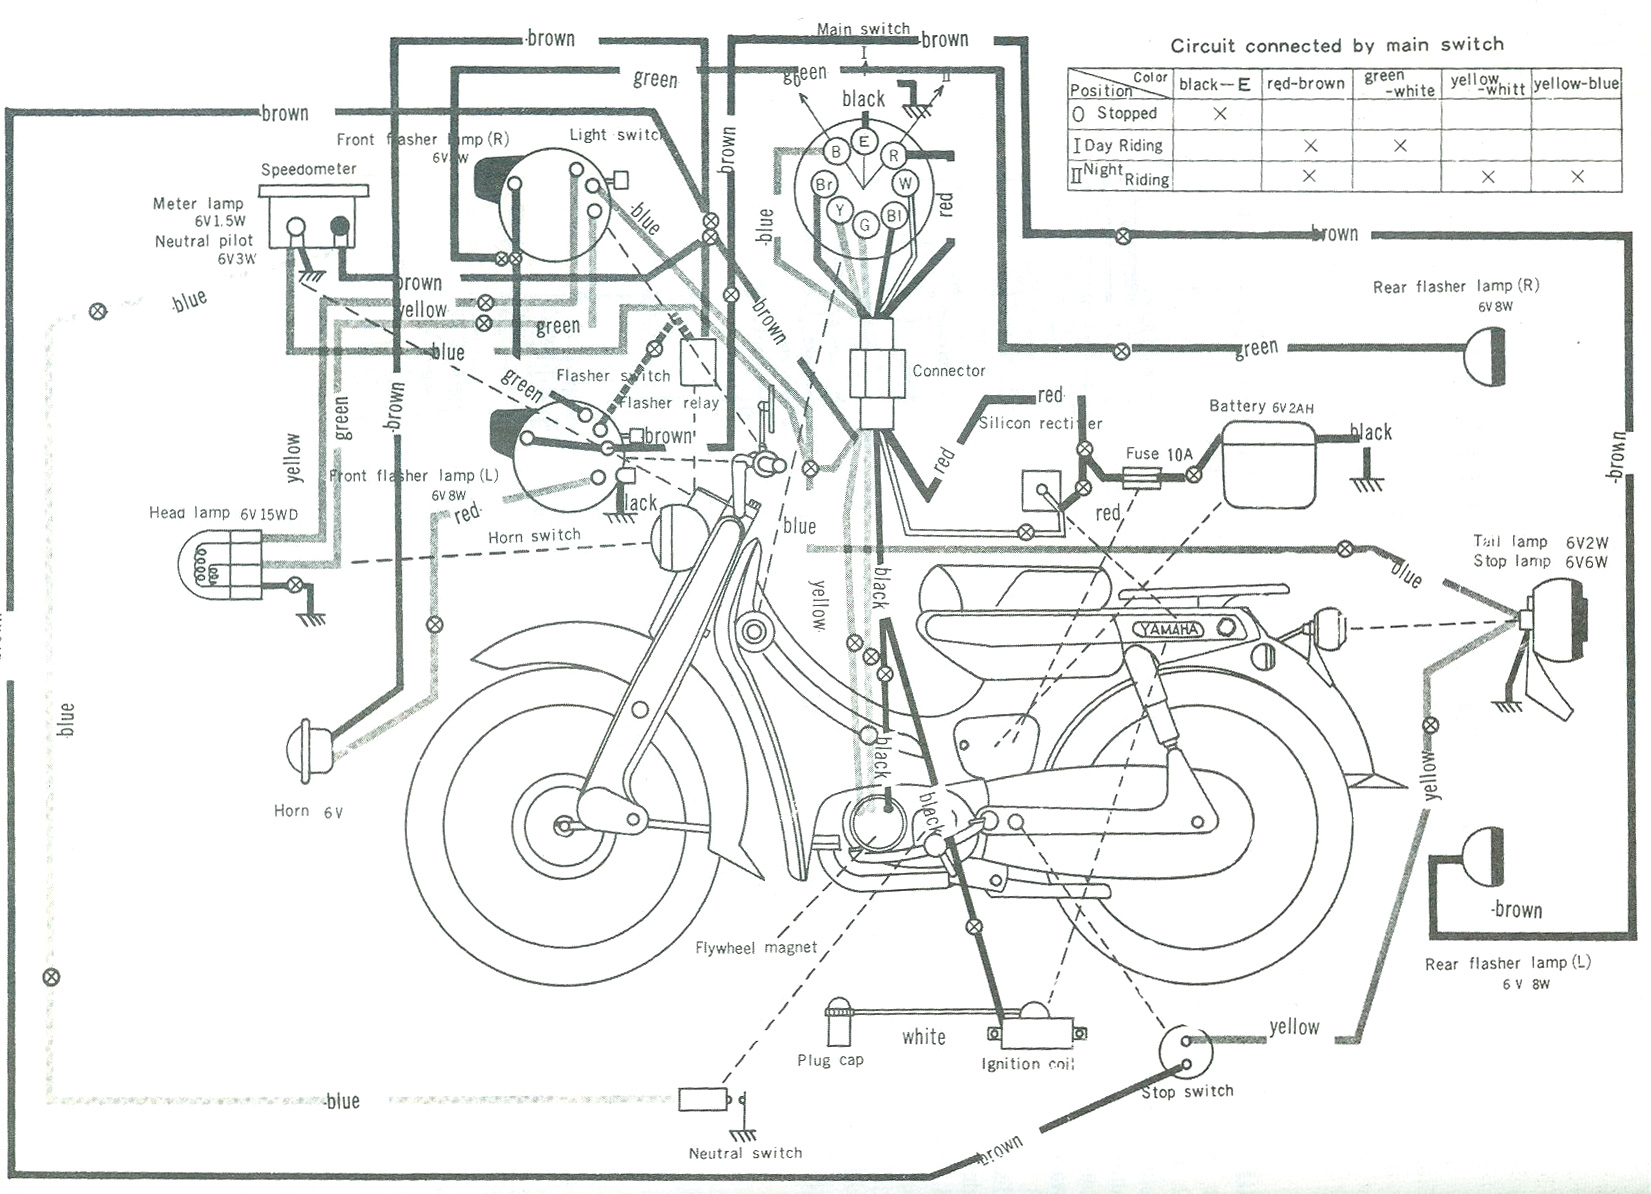 hight resolution of yamaha ct1 wiring diagram simple wiring schema yamaha ct3 175 specs yamaha ct1 175 wiring diagram